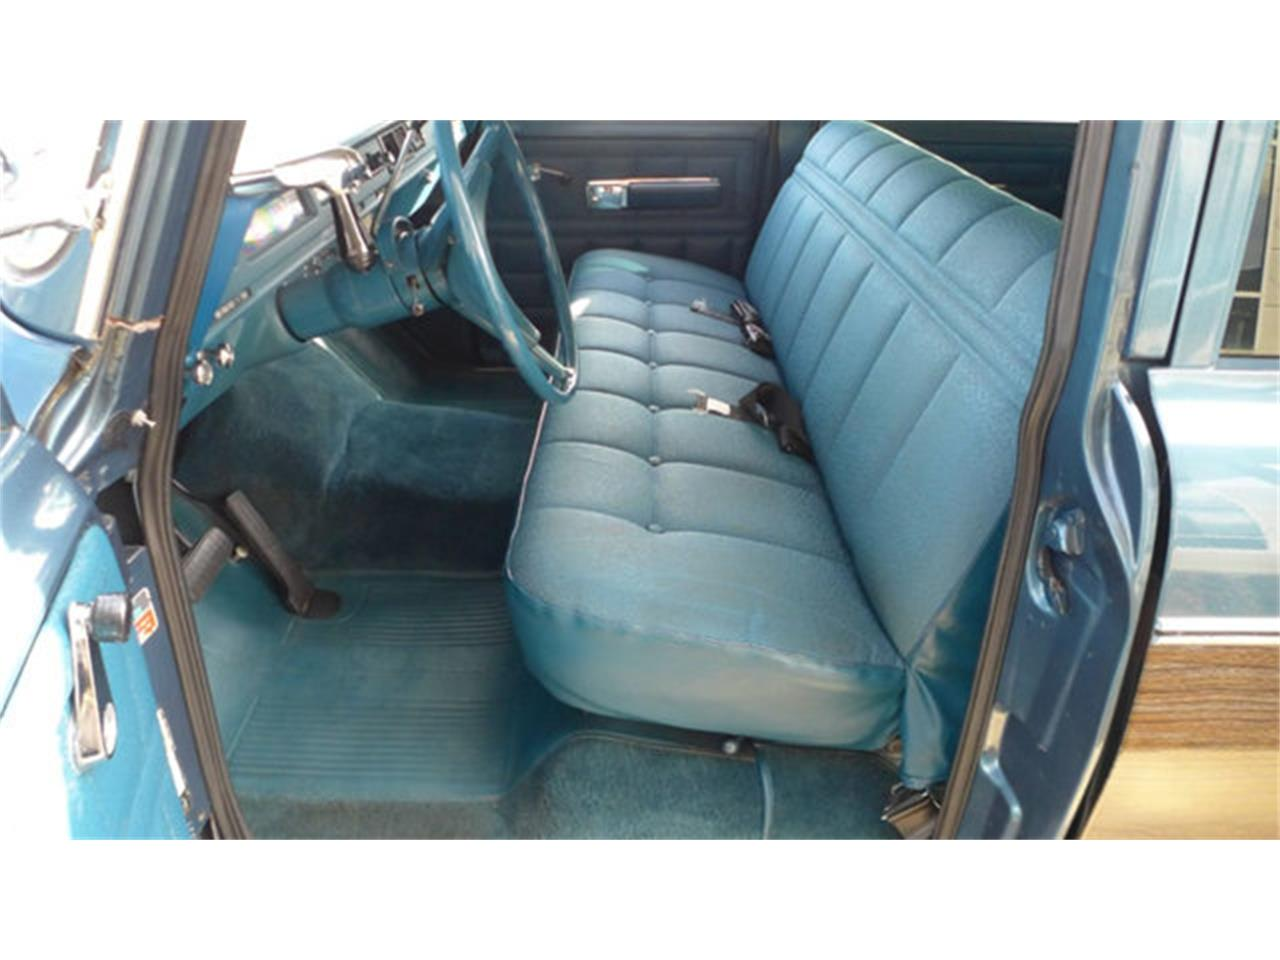 Large Picture of Classic '73 International Travelall located in North Carolina - $29,990.00 Offered by Hendrick Performance - Q4TC